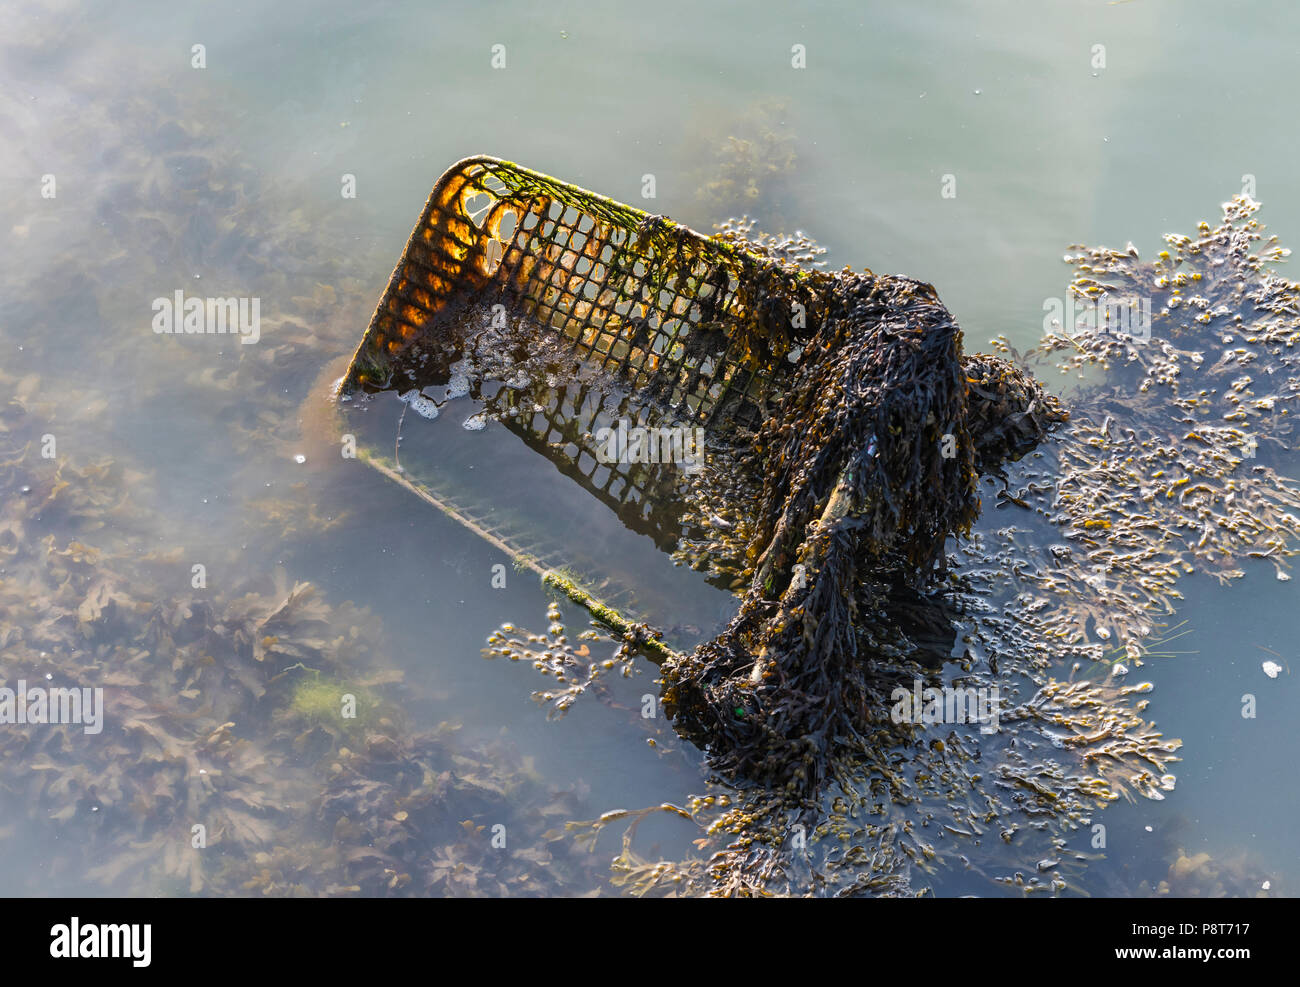 Abandoned shopping trolley in water covered in algae. Abandoned shopping cart discarded and decaying in water. Old junk, Thrown away. - Stock Image